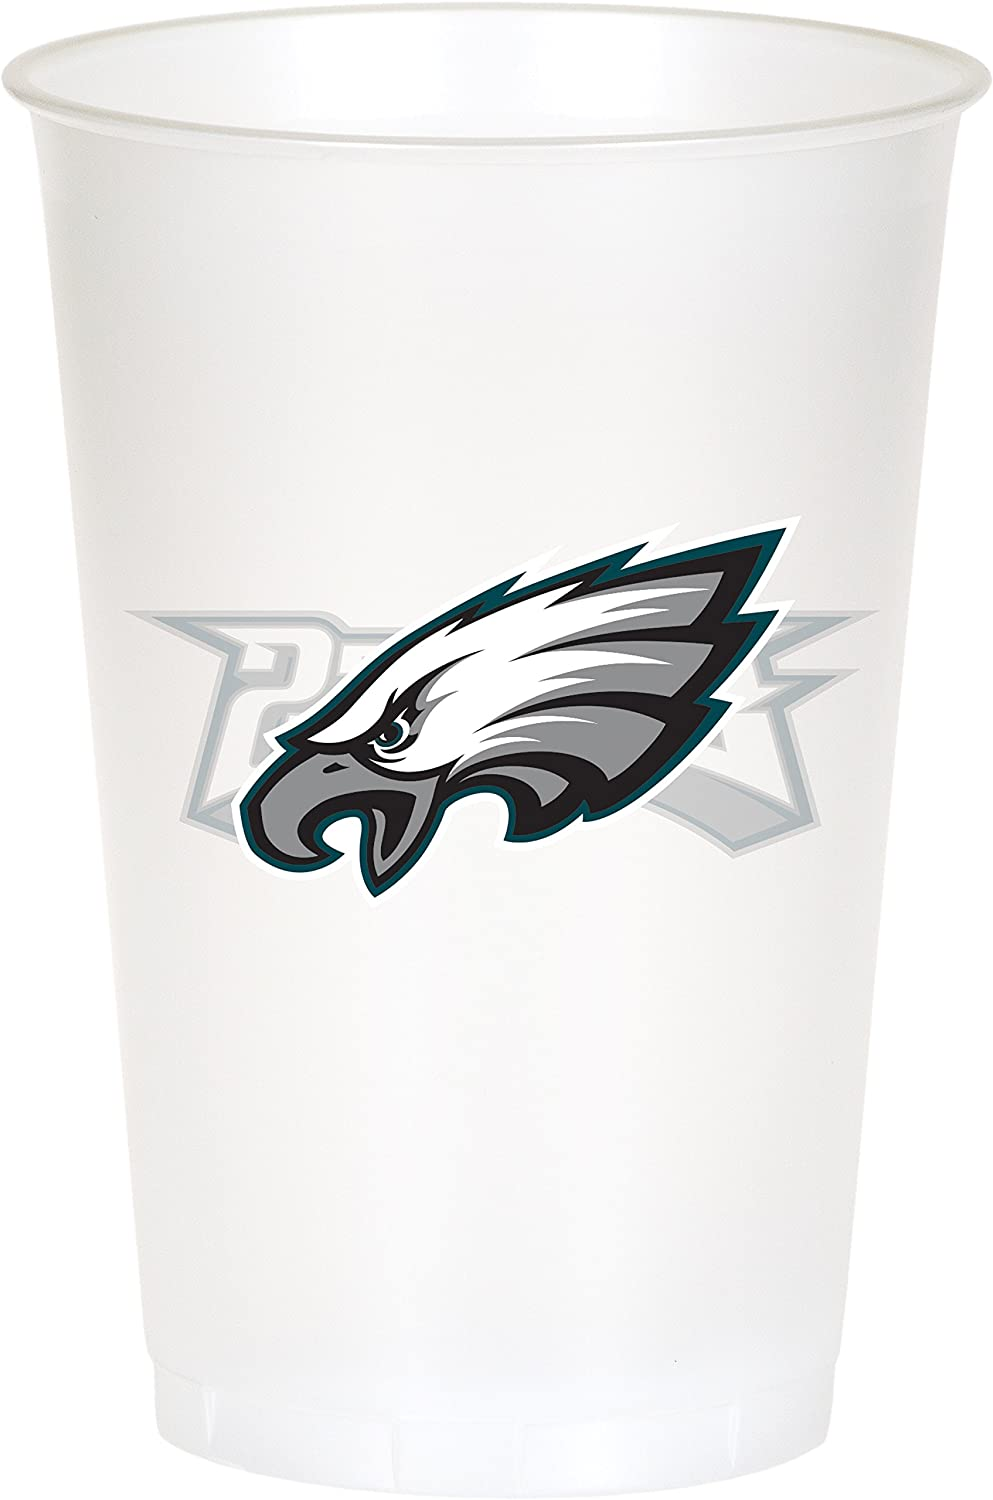 Amazon.com: Philadelphia Eagles vasos de plástico, 24 ...